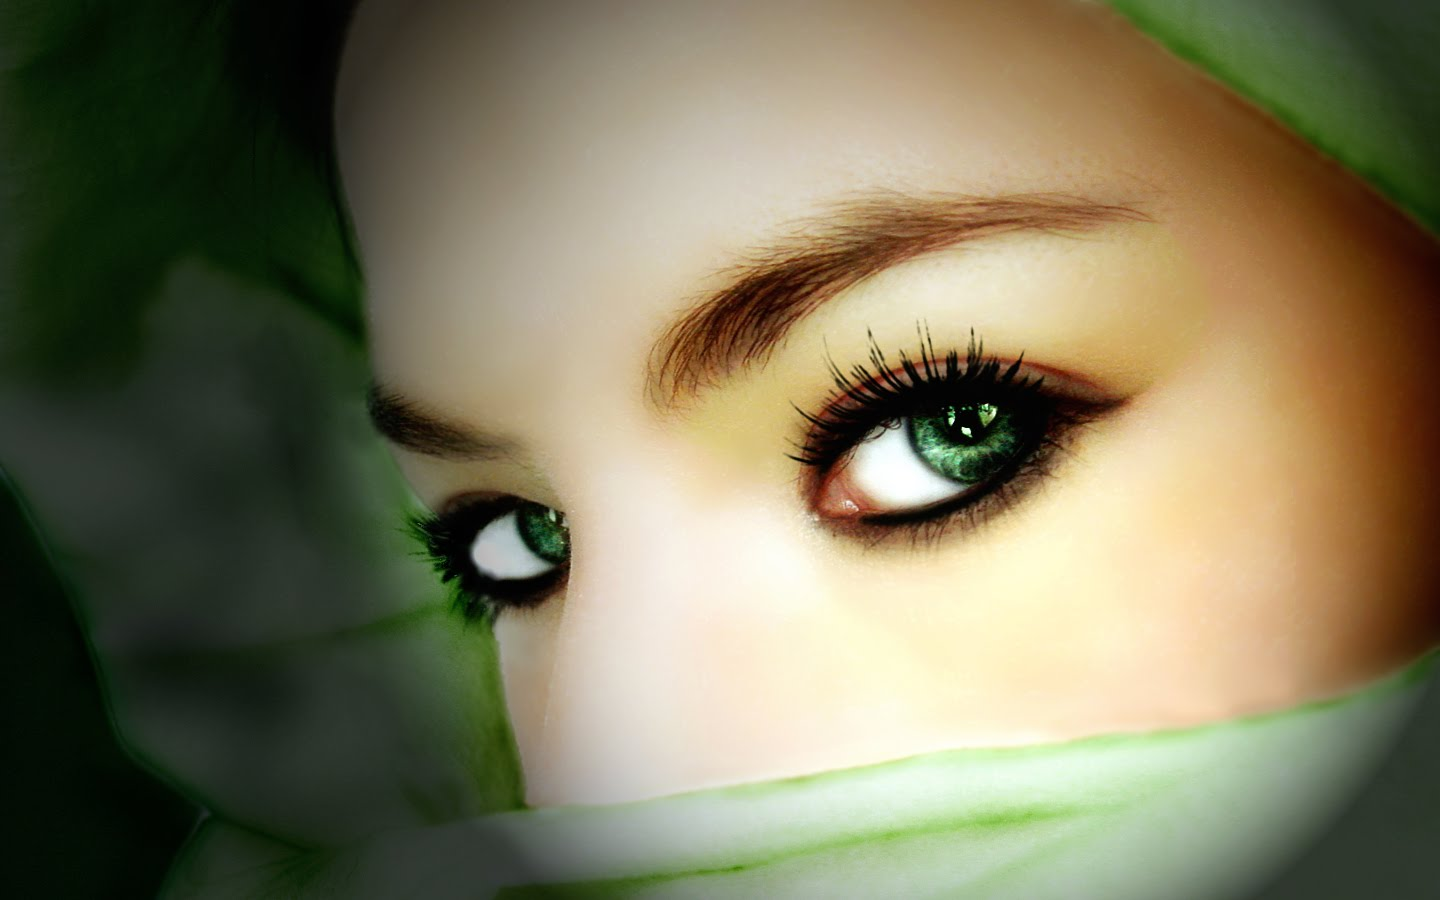 Sad Cute Baby Wallpaper Download Most Beautiful Eyes Of Arab Muslim Girls Wallpapers